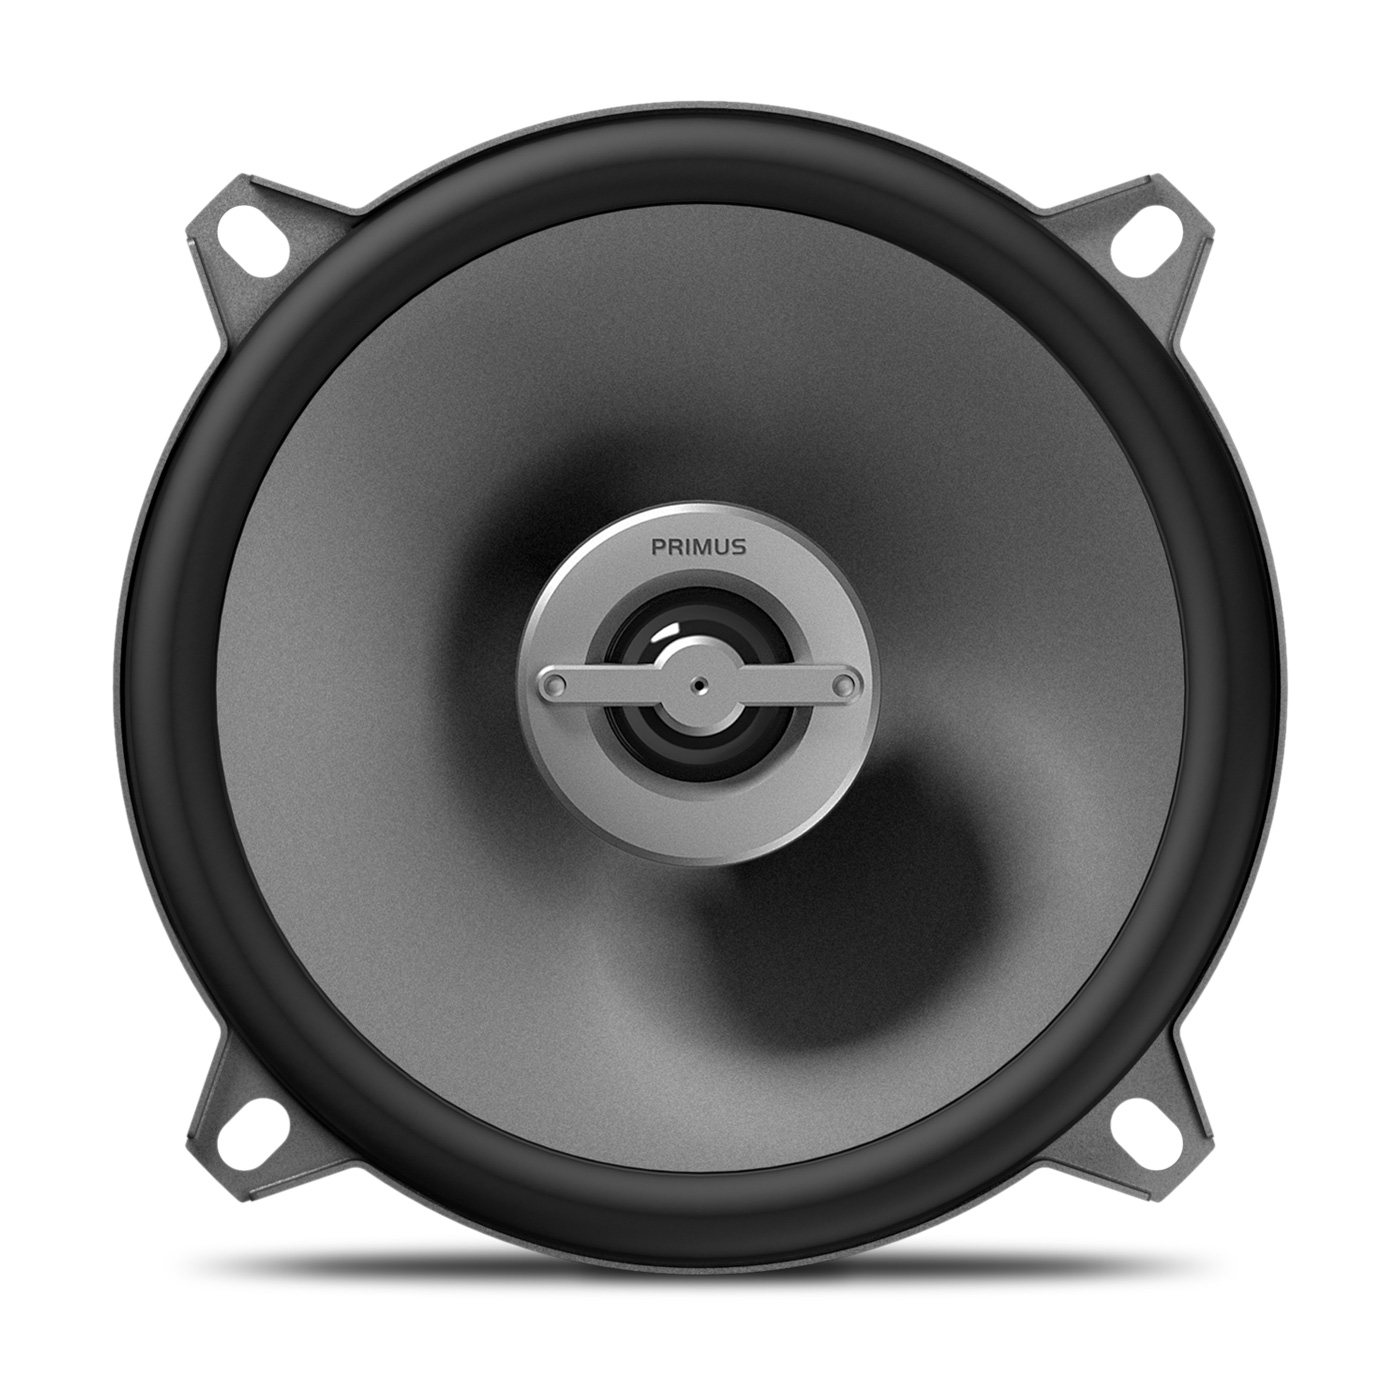 "Infinity PR5002IS 5-1/4"" 2-way Coaxial Speaker System"